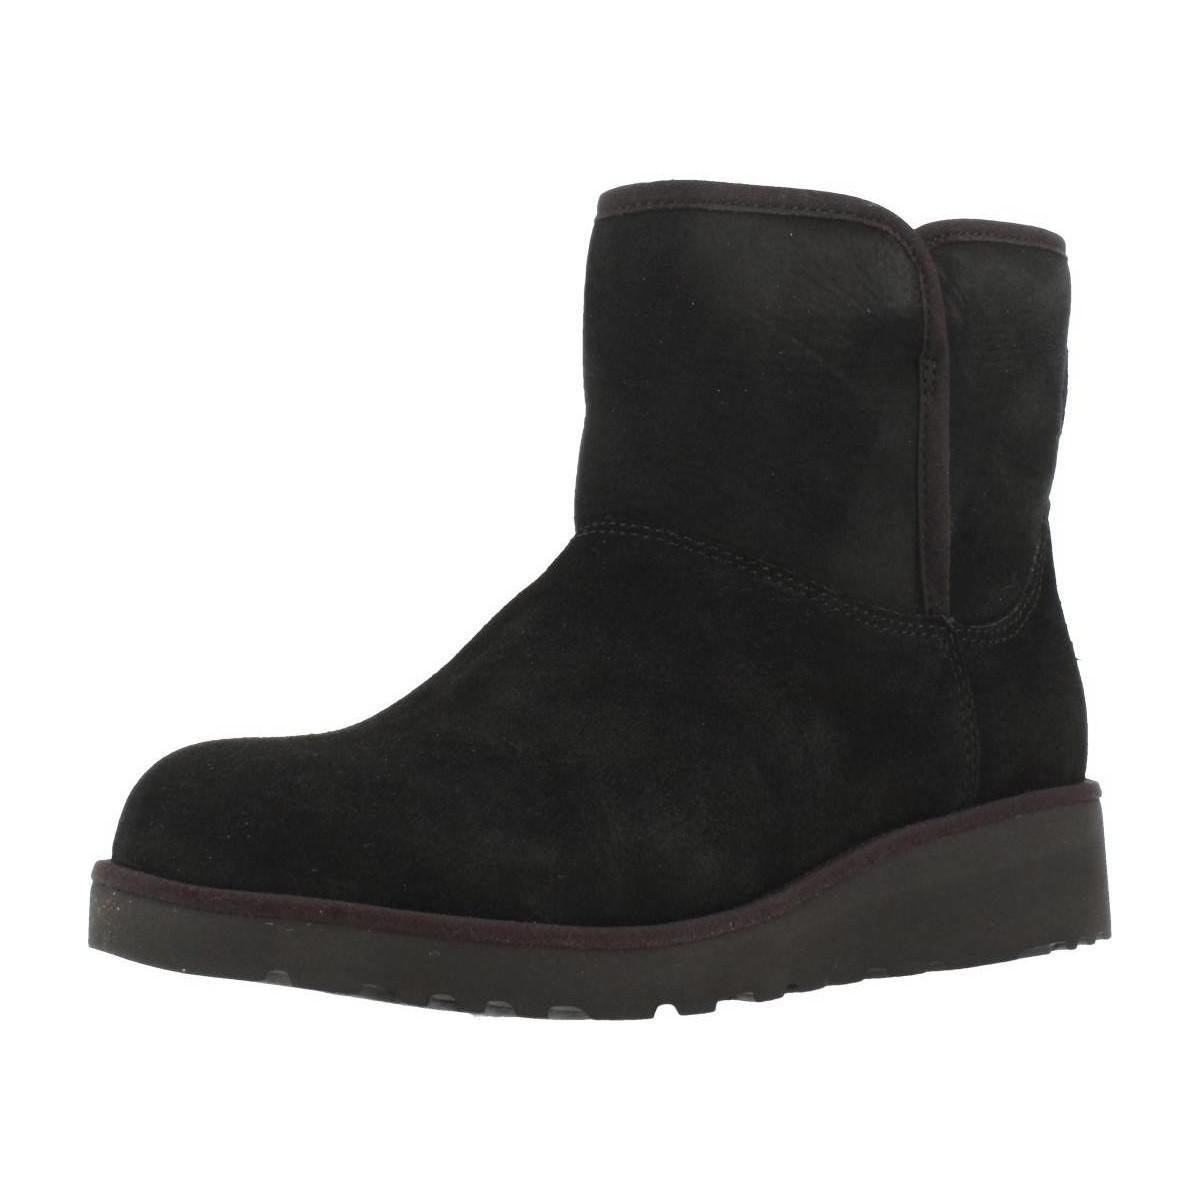 17a76d3b60c Ugg W Kristin Women's Low Ankle Boots In Black in Black - Lyst